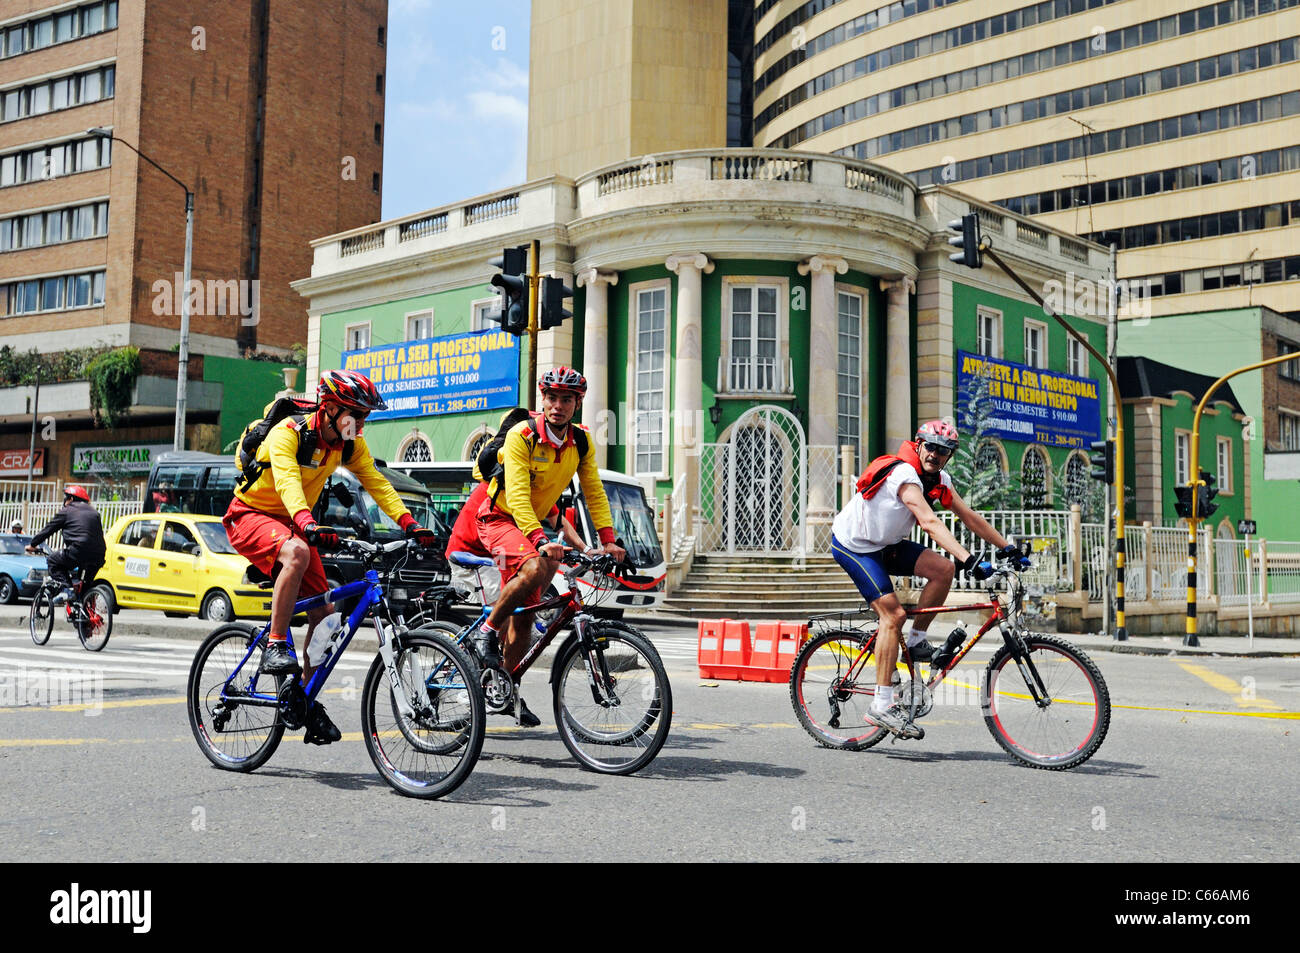 Ciclovia, people on bikes on sunday, when streets closed to cars, Bogotá, Colombia - Stock Image